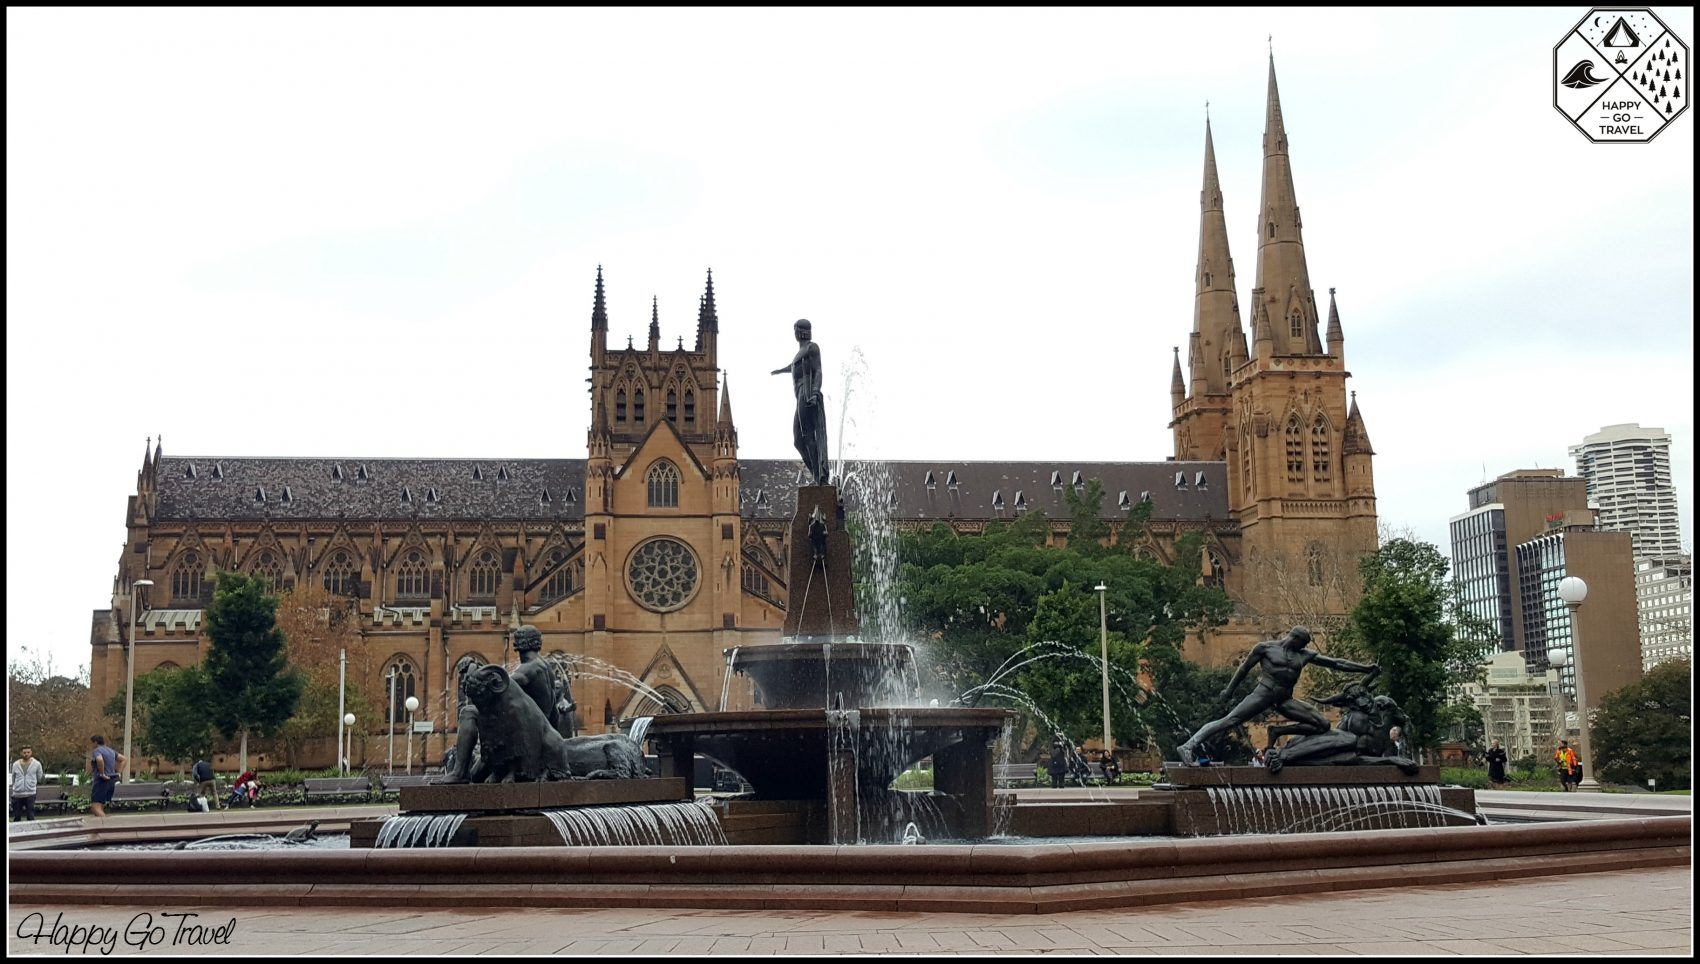 Sydney landmarks | historic castle and water fountain